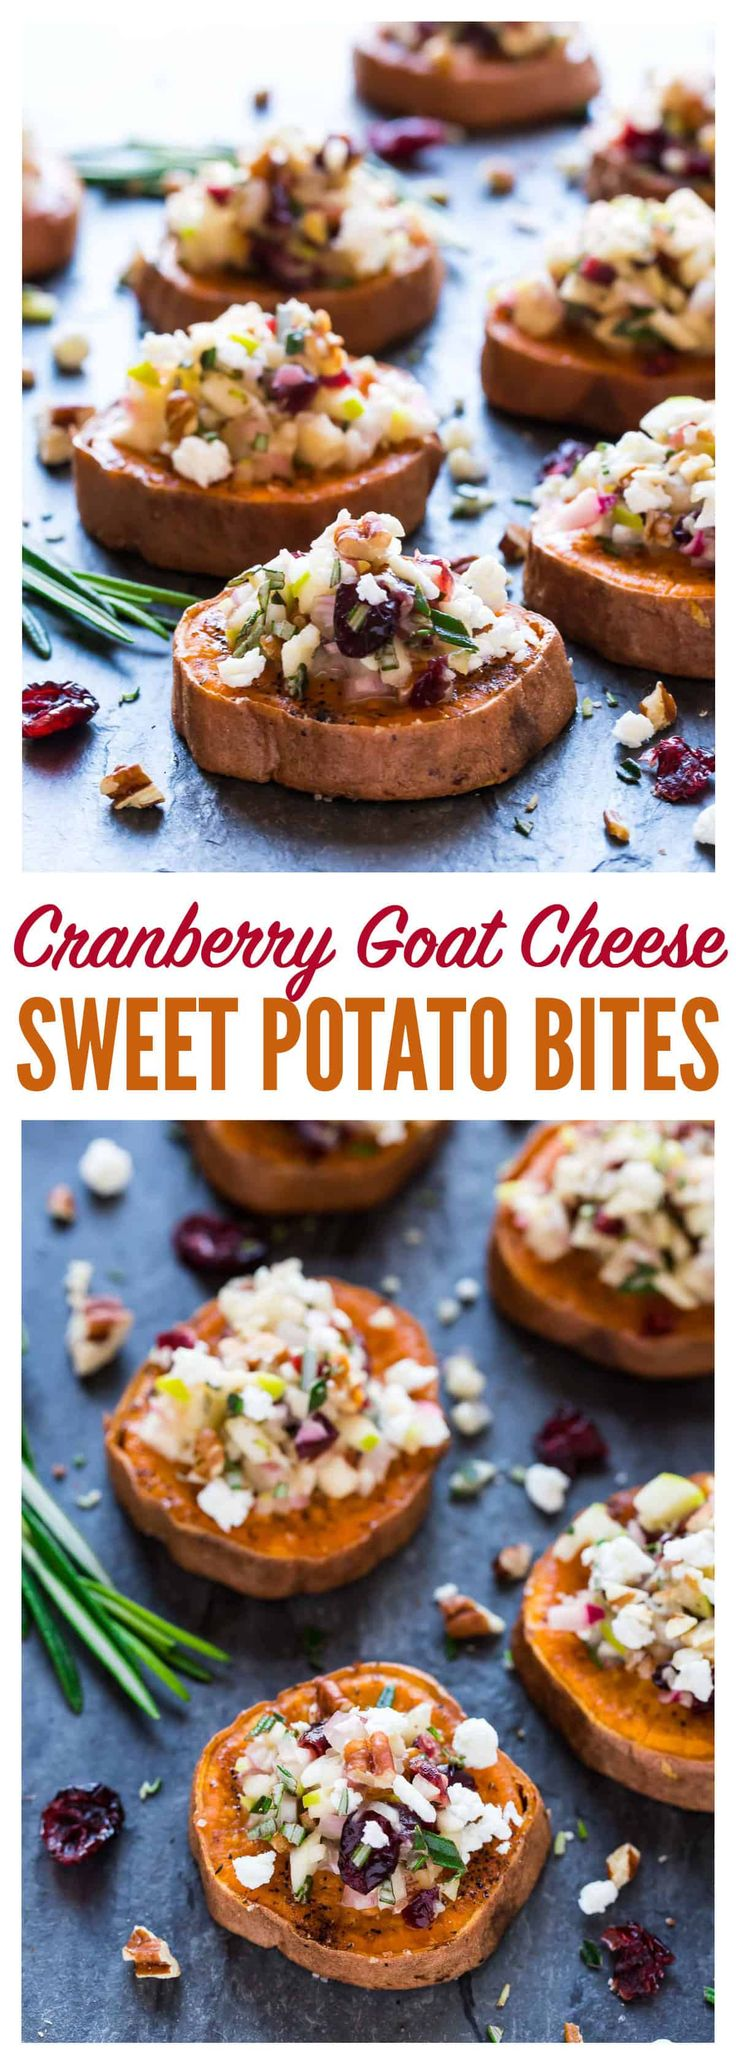 Baked Sweet Potato Rounds with Goat Cheese, Cranberry, Apple, and Pecans. An easy and addictive sweet potato appetizer! Healthy baked sweet potato slices roasted until crispy, then topped with a delicious combination of holiday flavors. Perfect easy appetizer for Thanksgiving, Christmas, and any party! #appetizer #recipes #healthy #glutenfree via @wellplated